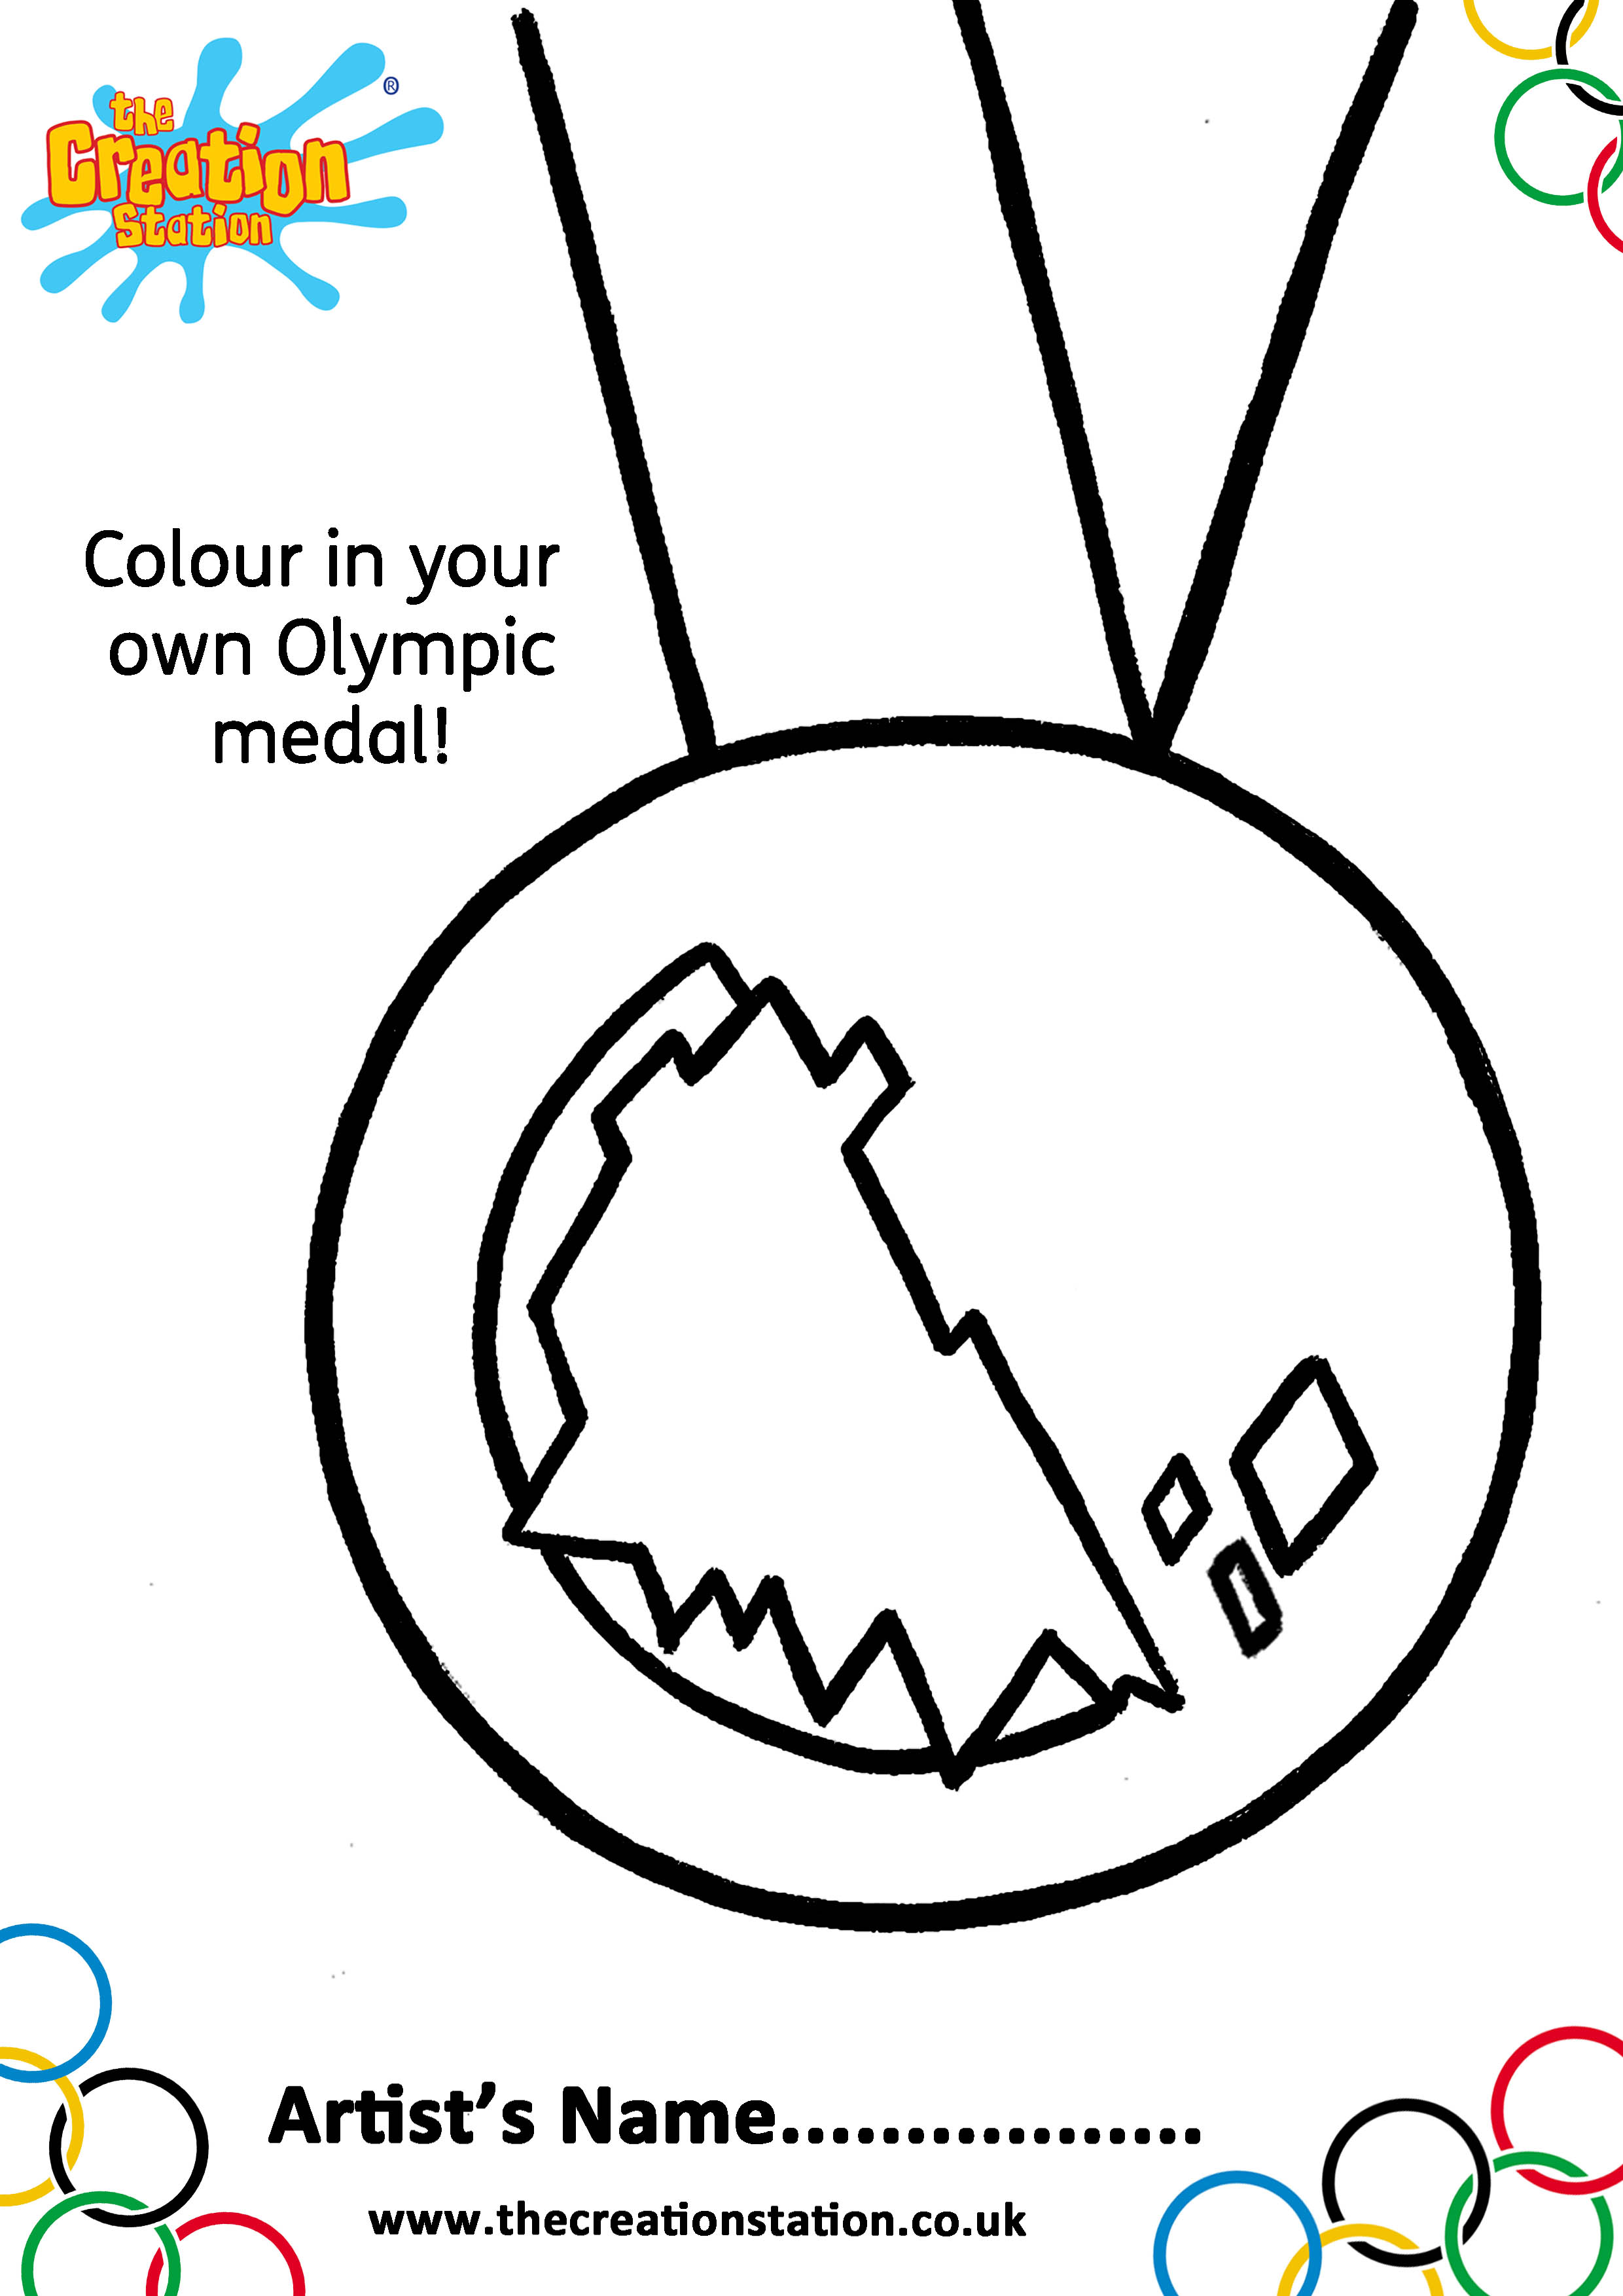 304x392 coloring page winter olympic medals 2480x3508 colour and decorate your own medal for the winter olympics